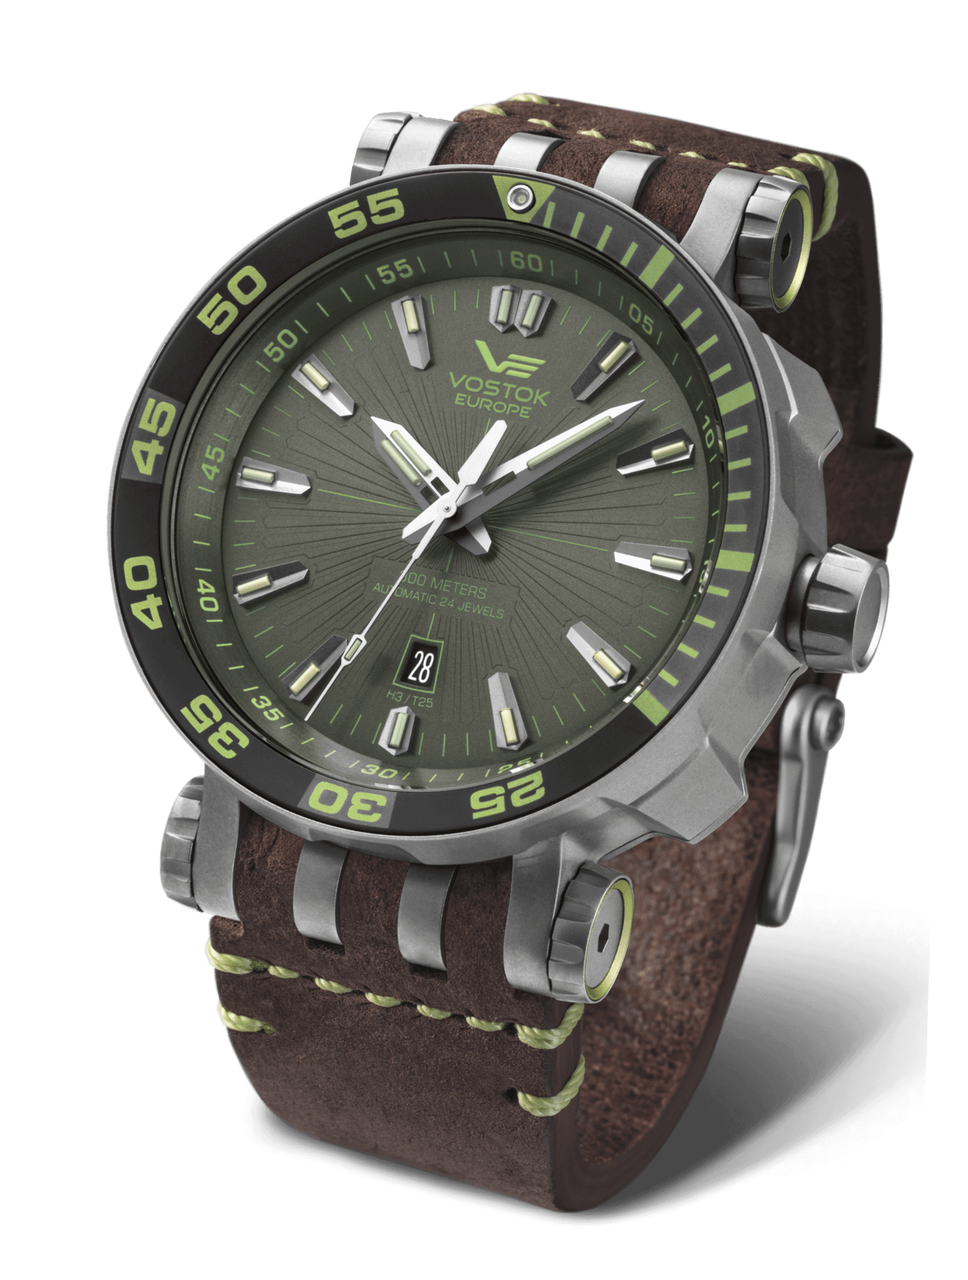 r2awatches-images-vostok-europe-energia-2-nh35-575h284-0_1__55415.1530936199.png